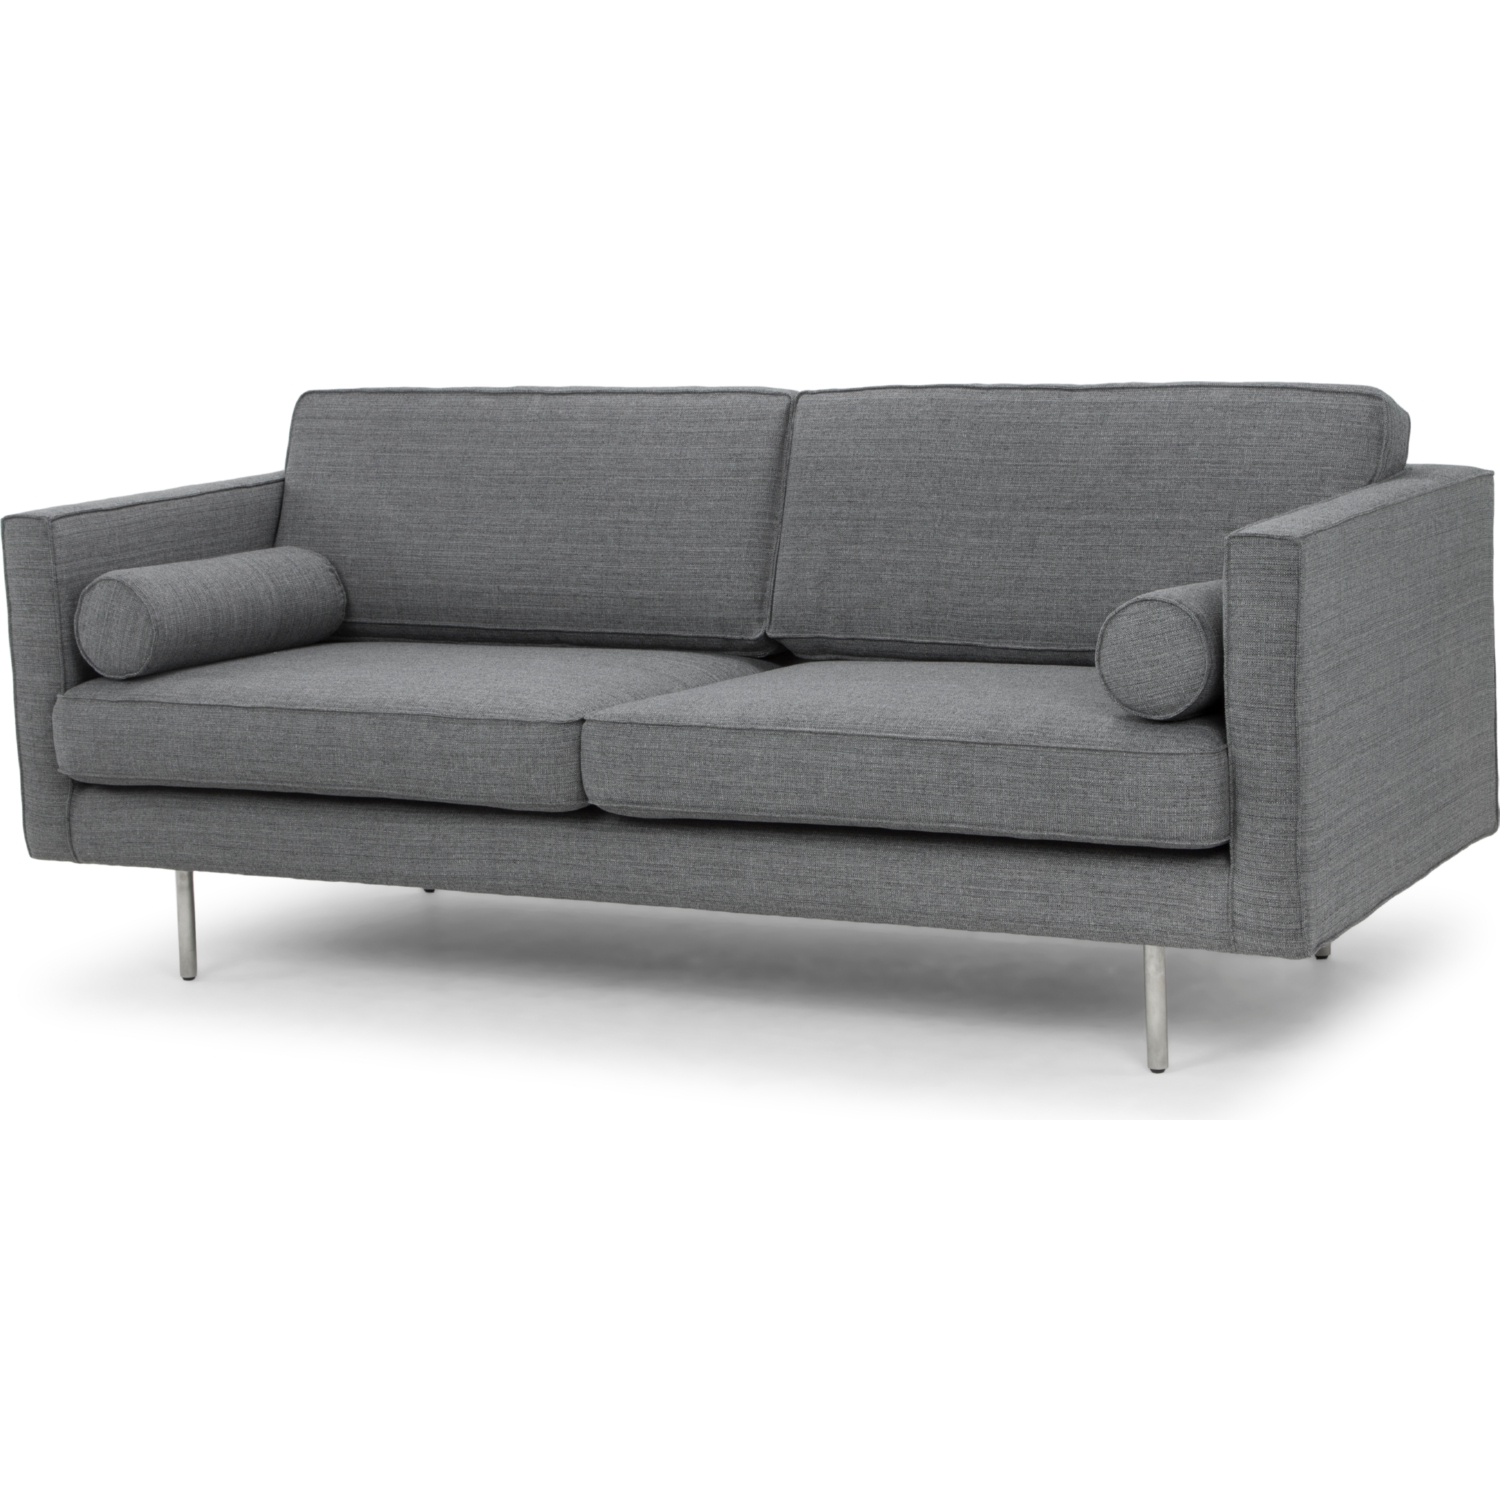 Sensational Cyrus Sofa In Grey Tweed Fabric On Brushed Stainless Legs By Nuevo Modern Furniture Onthecornerstone Fun Painted Chair Ideas Images Onthecornerstoneorg